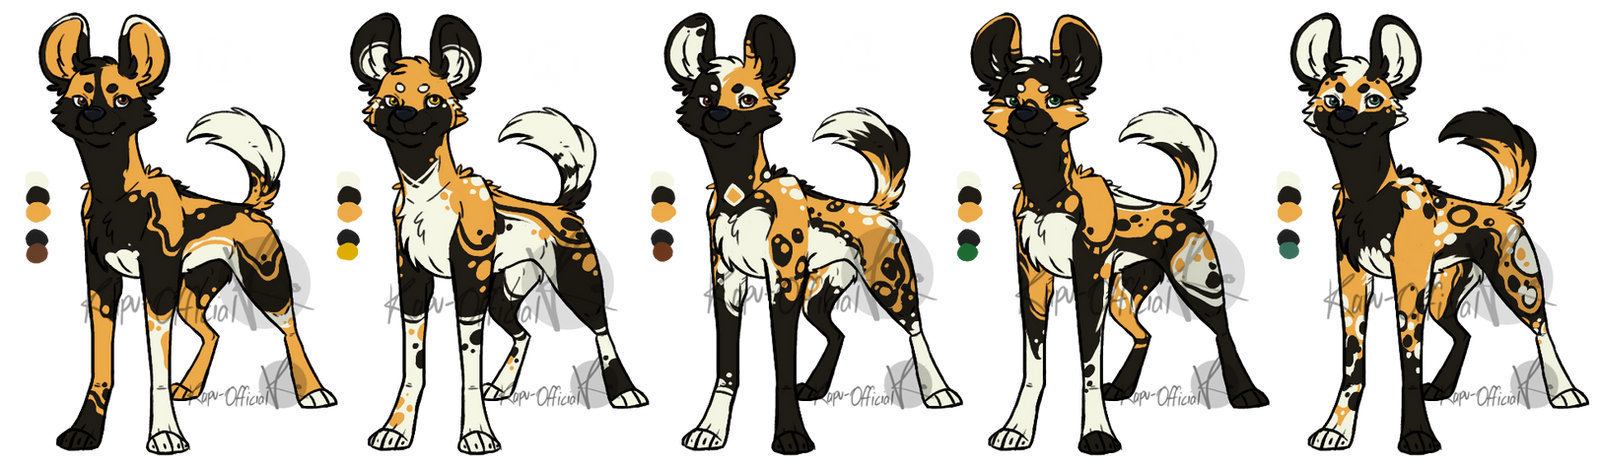 Adoptables Wild Dogs Batch Sold Out By Keavemind On Deviantart